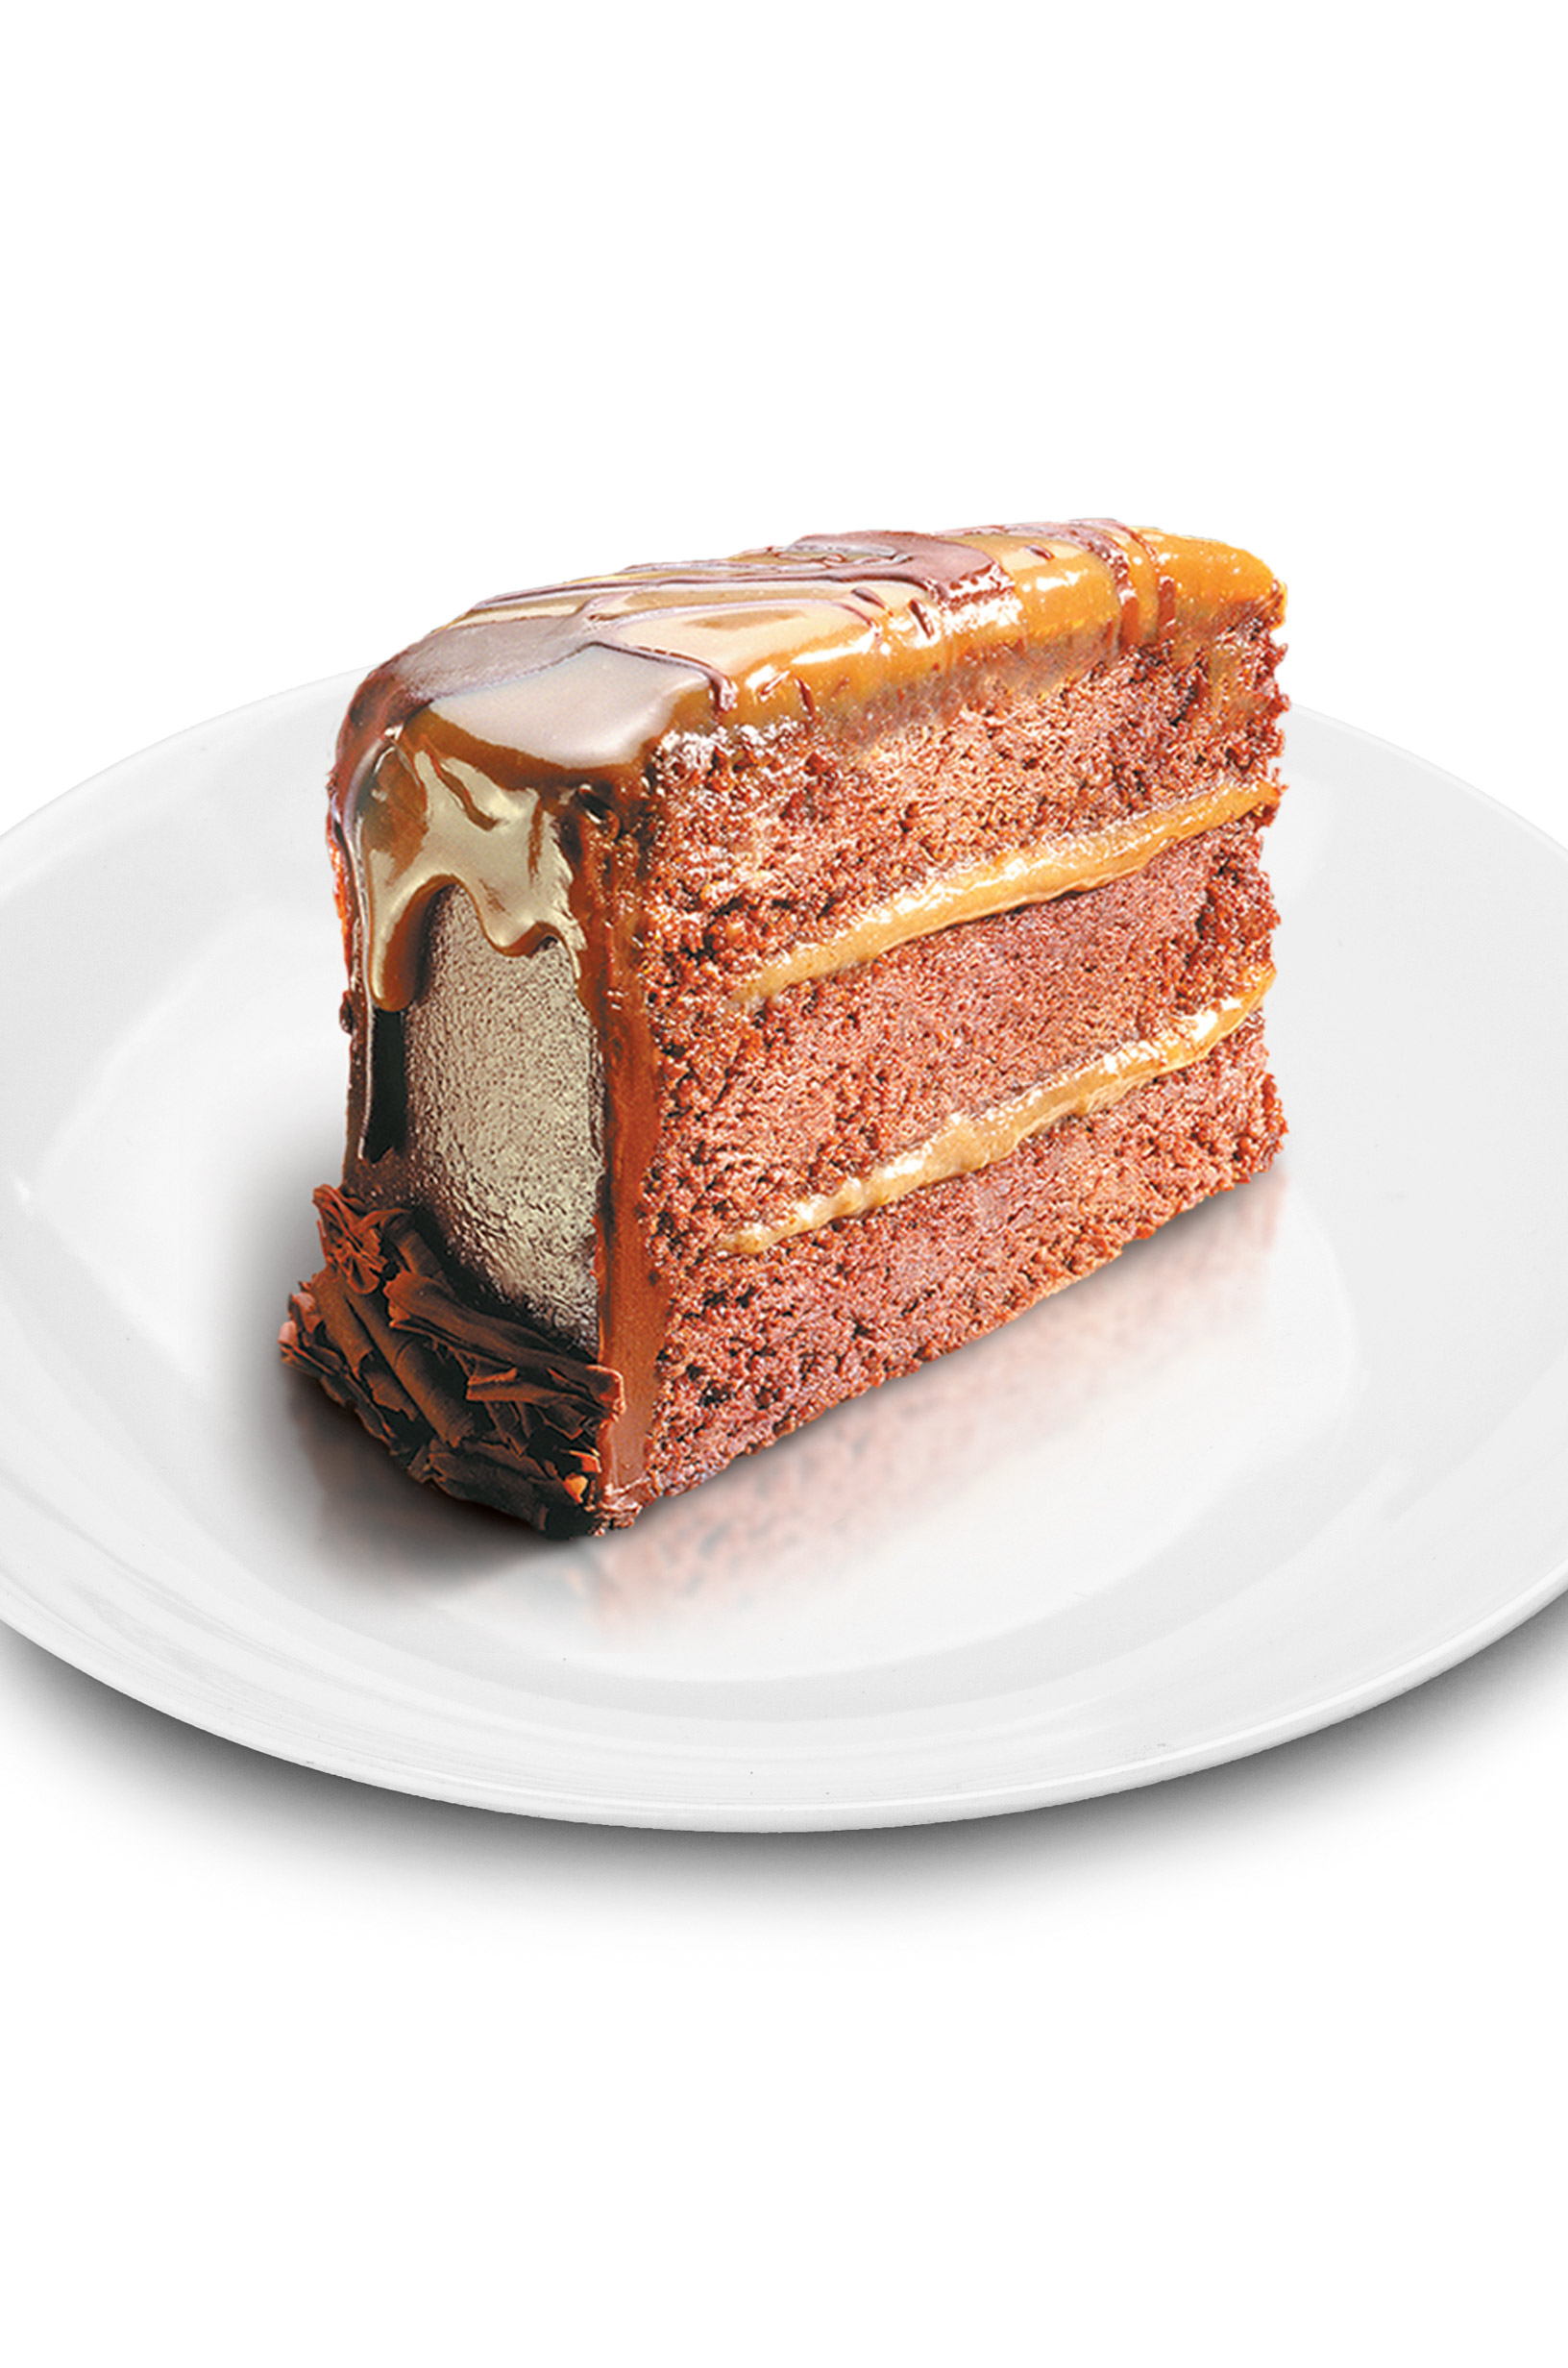 Chocolate Caramel Cake-white-plate-isolated-verticle